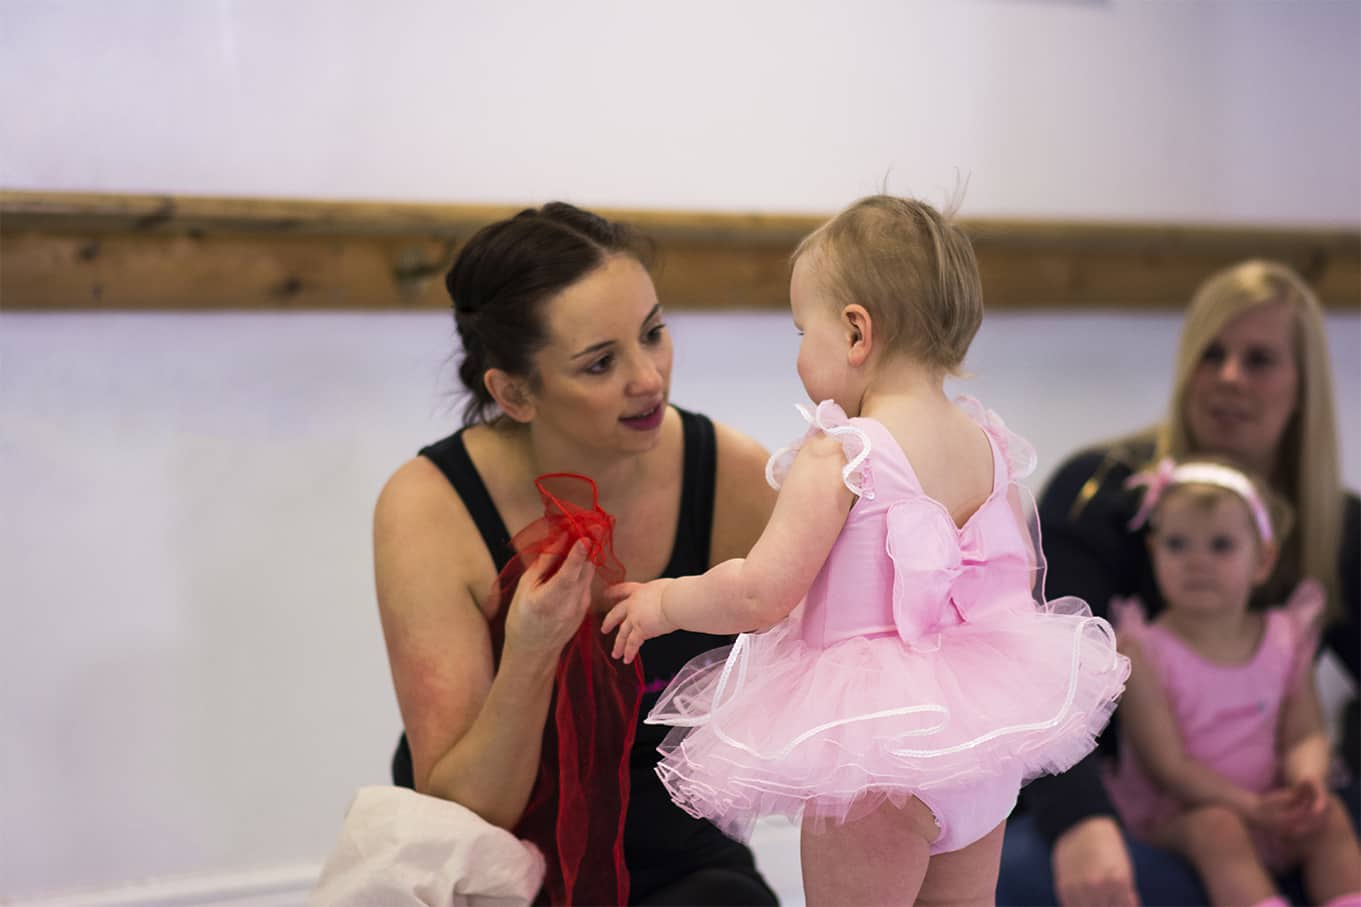 babyballet dance classes, parties, uniform & franchising